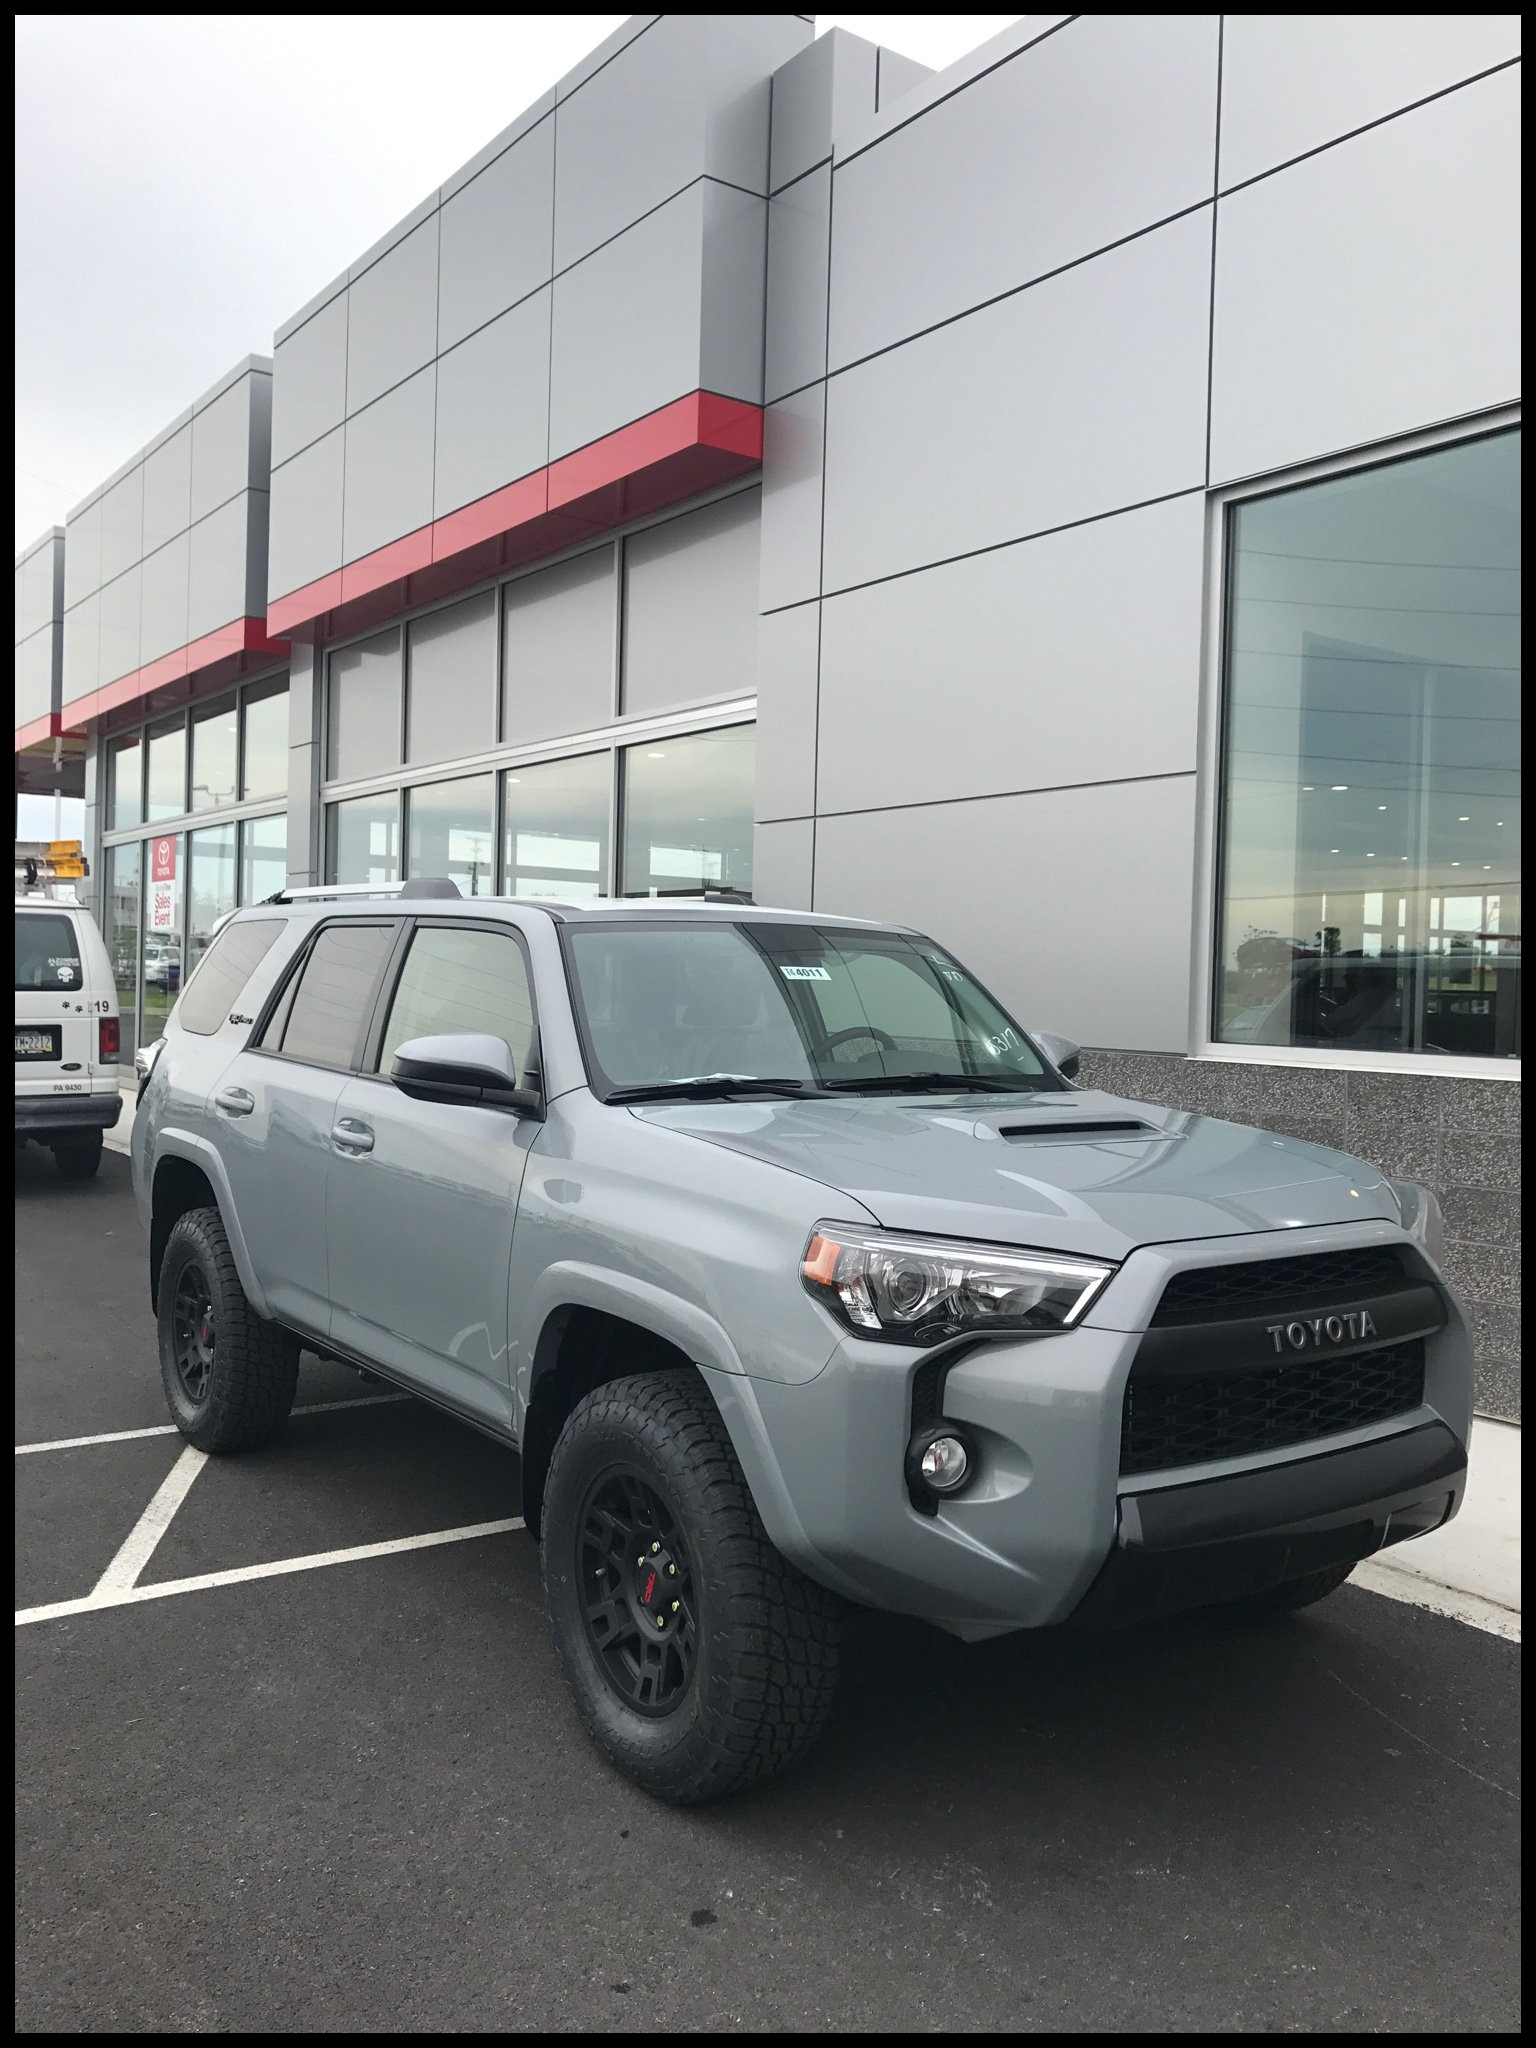 2019 toyota 4runner forum Luxury 2018 Trd Pro Colors Cement Page 3 toyota 4runner forum